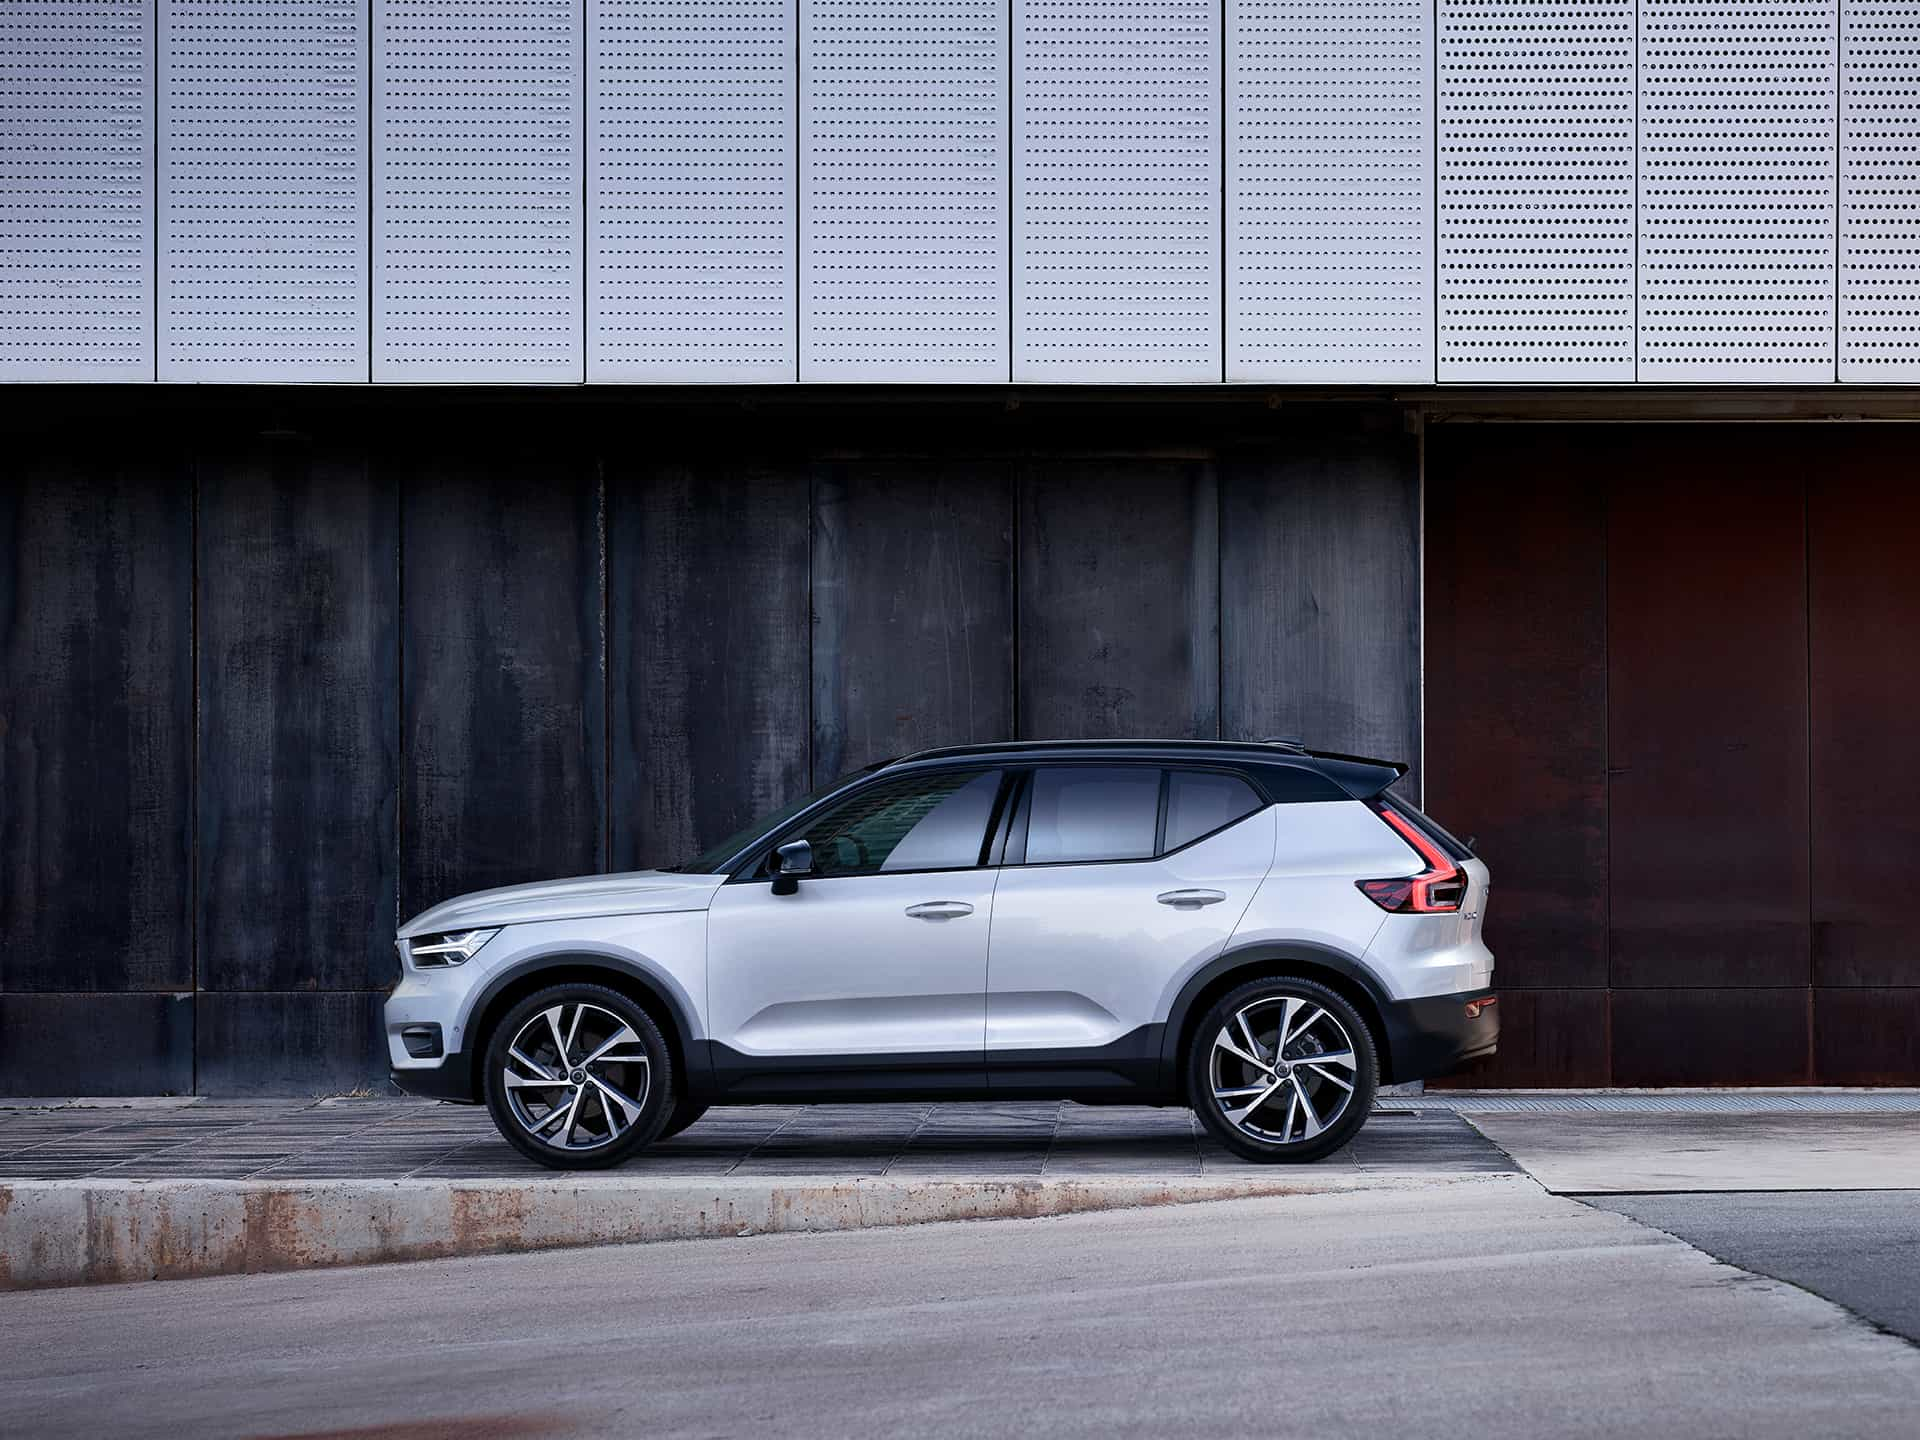 A white Volvo XC40 SUV is parked outside a building.